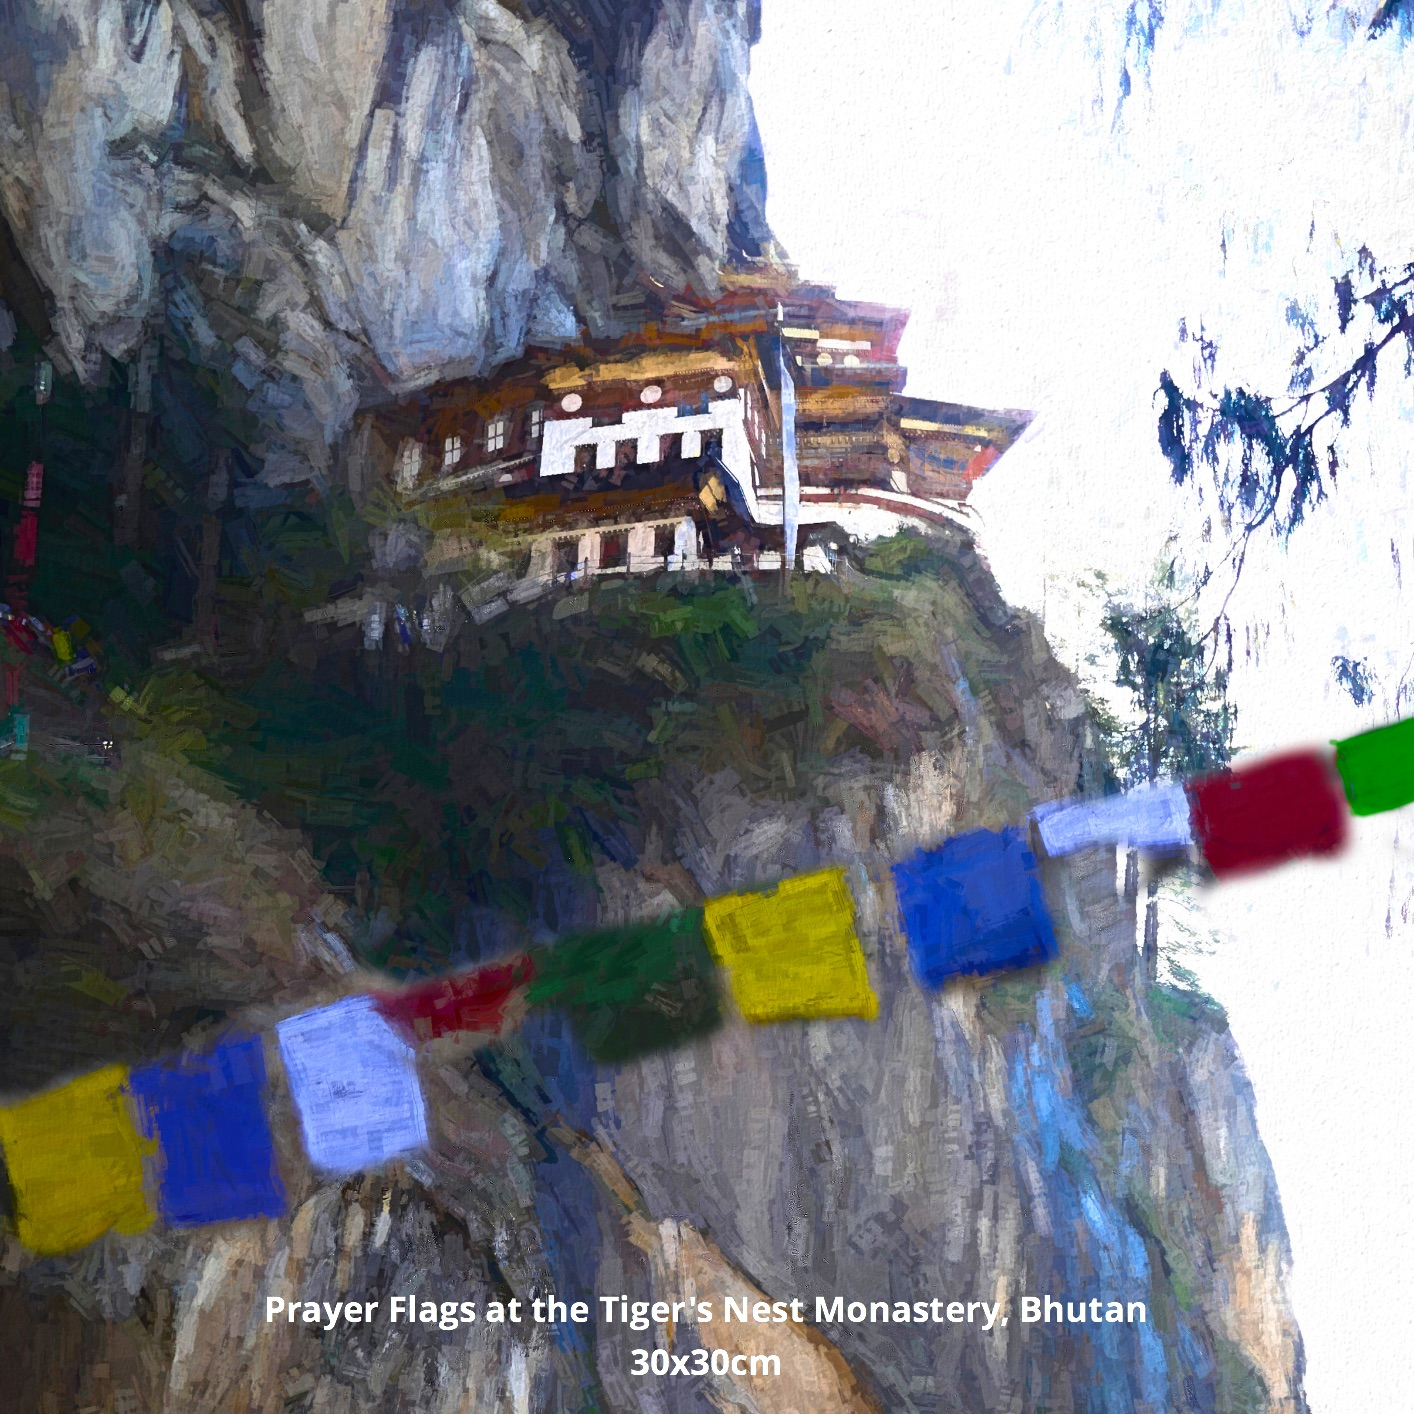 Prayer Flags at the Tiger's Nest Monastery, Bhutan